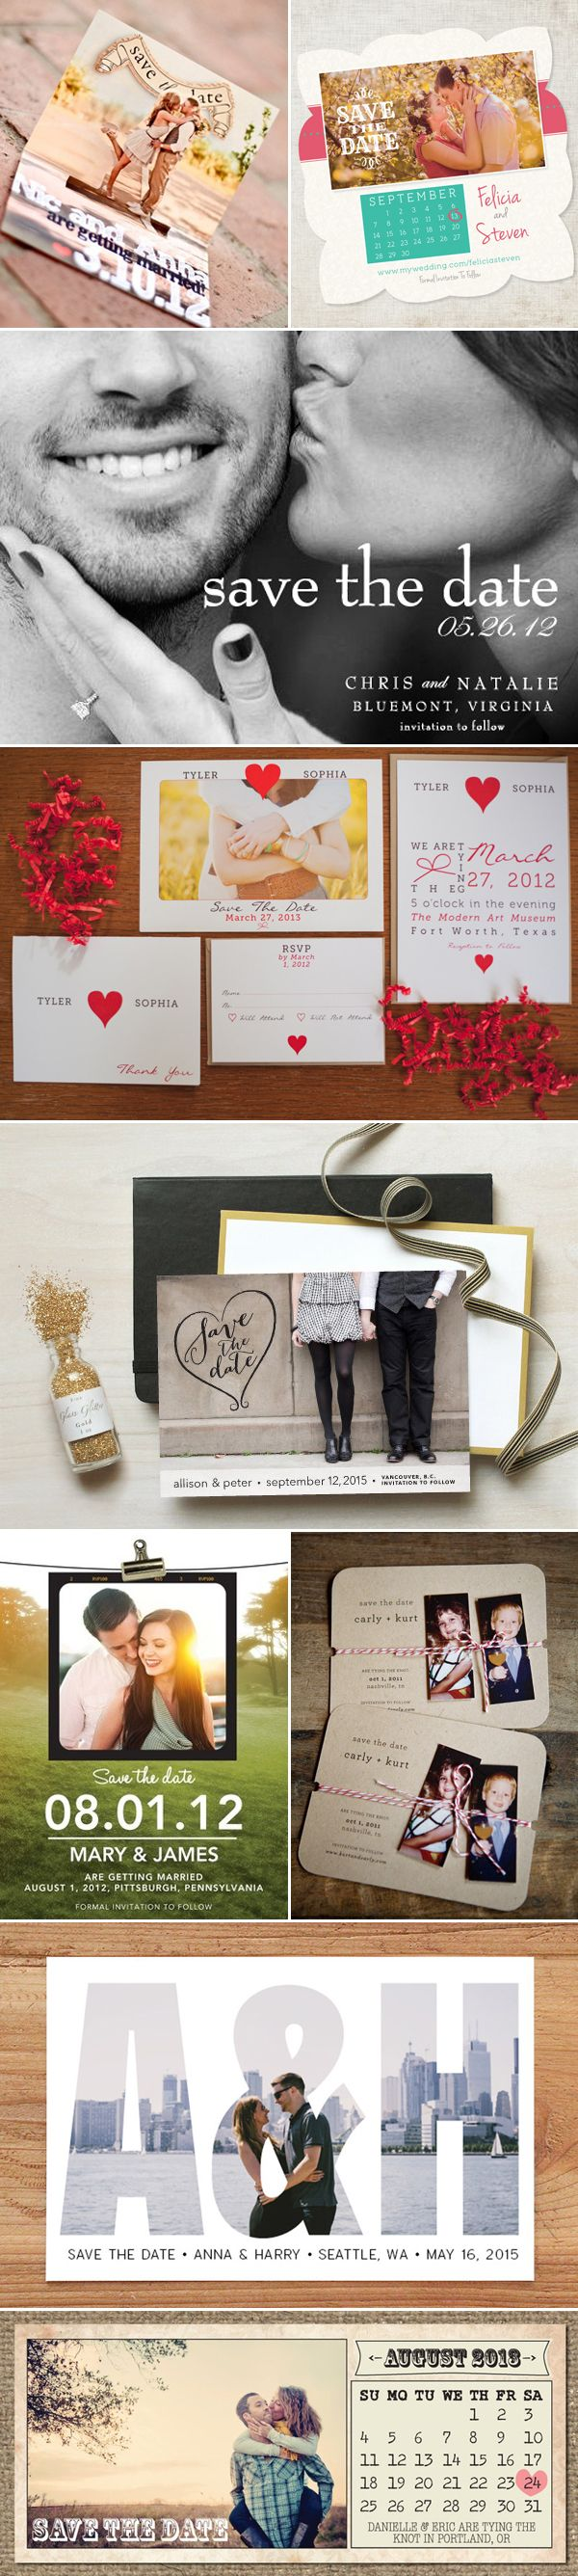 If you are blissfully engaged and ready to share the news of your impending wedding, sending a personalized save-the-date photo card is one of the cutest ways to make the announcement! Save-the-date cards allow you to give your guests enough time to plan and schedule their time to make it to your wedding. It's a …